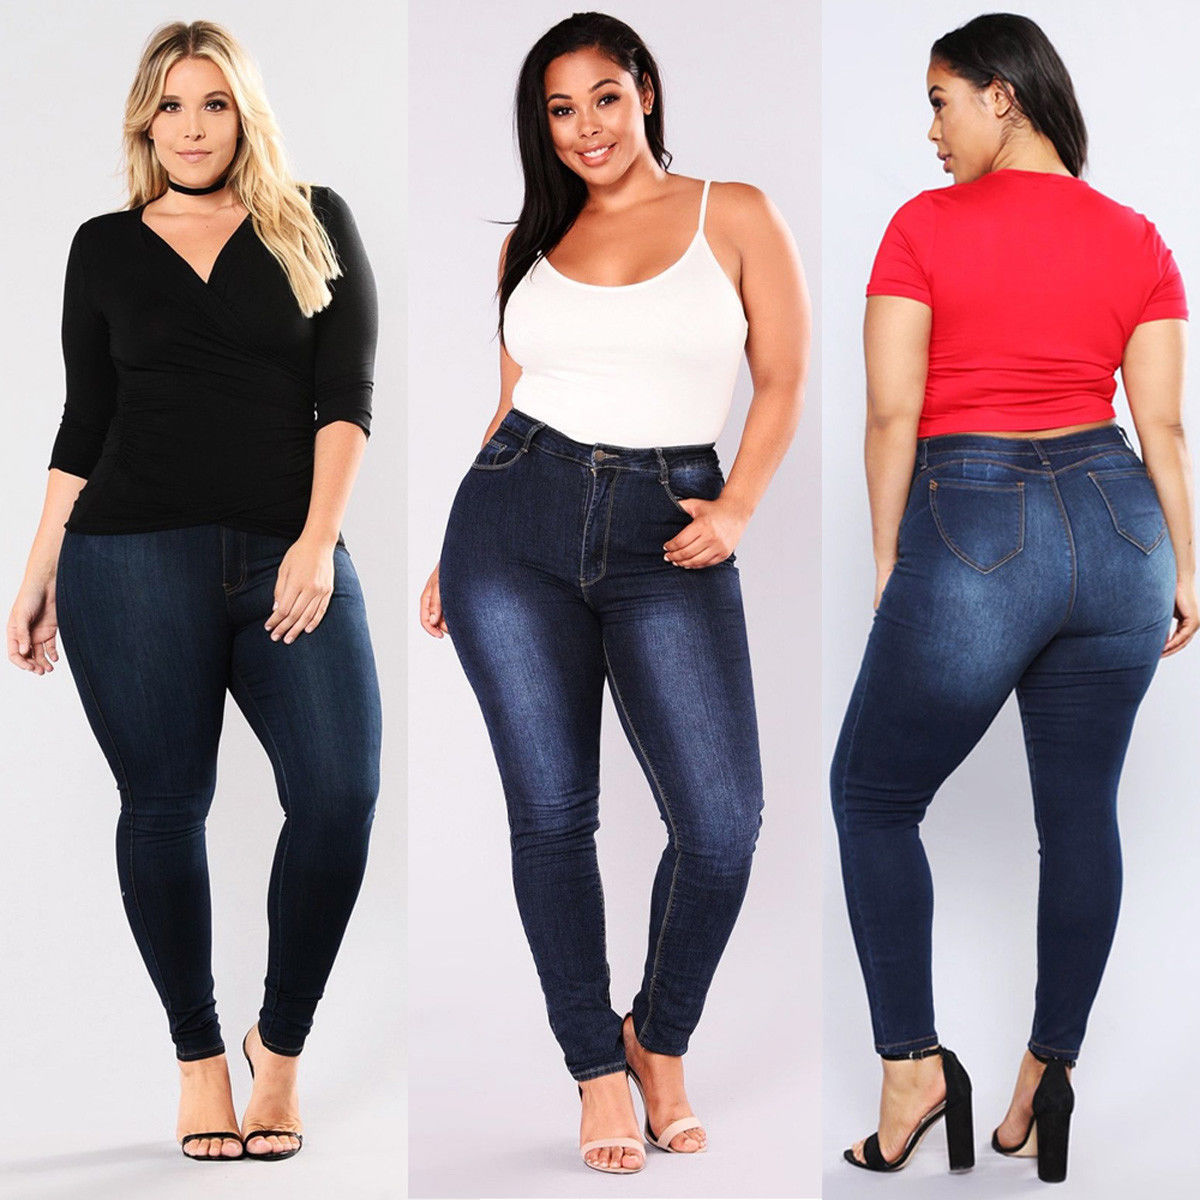 2018 Heißer Jeans Frau Plus Größe 5xl Hohe Taille Jeans Gradienten Denim Damen Jeans Femme Push-up Mom Jeans Blume Hosen Elastische Buy One Give One